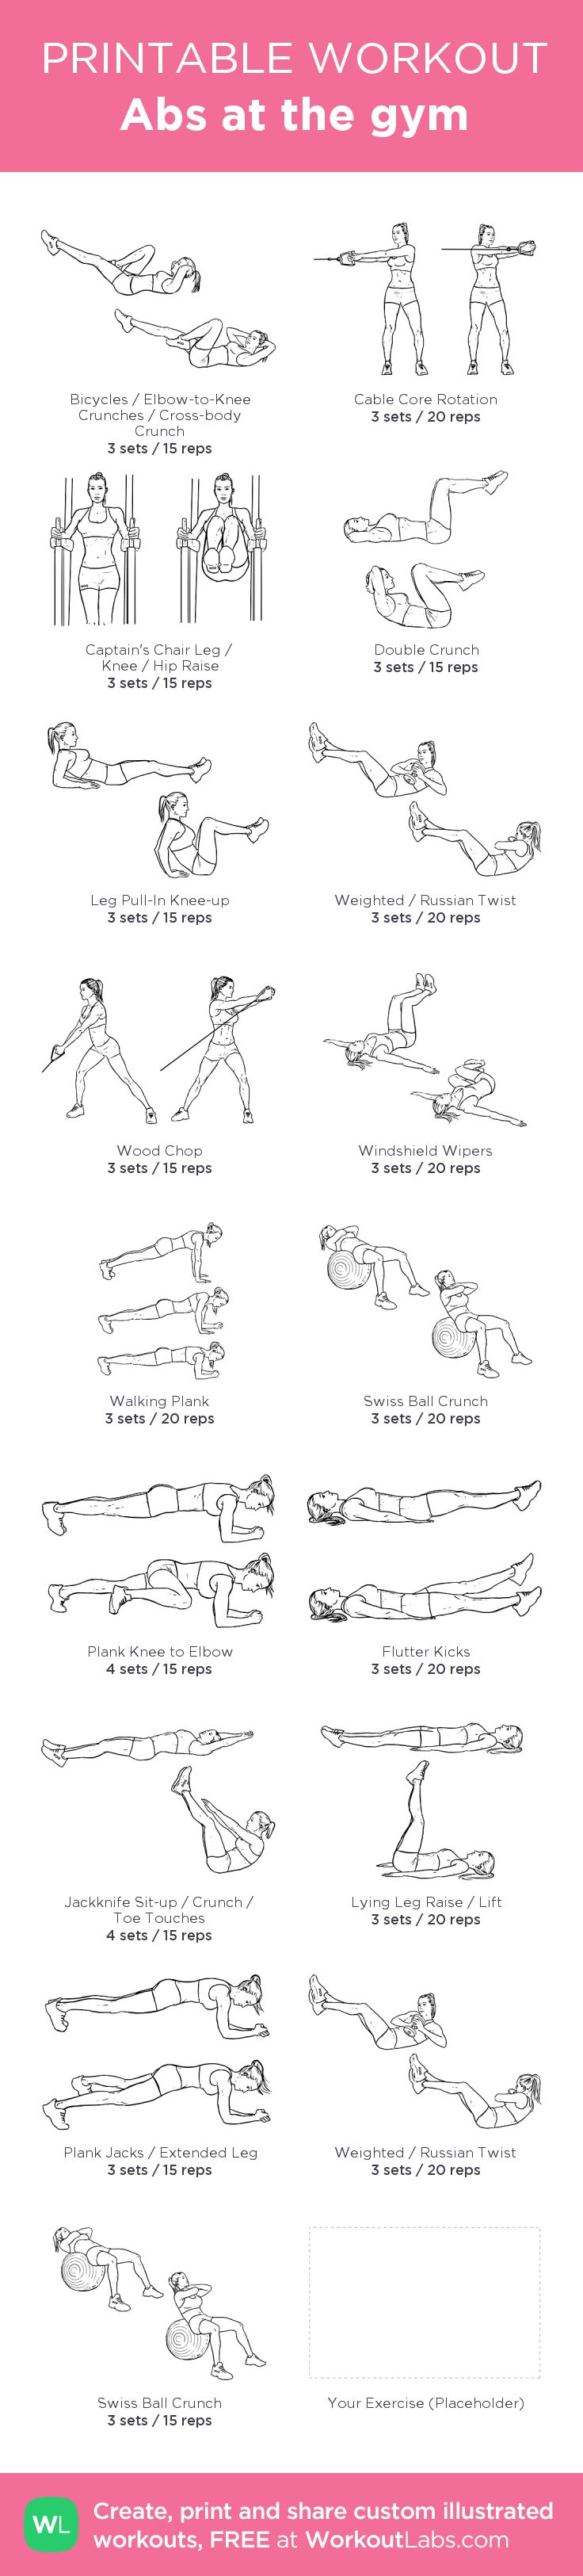 Abs at the gym: my visual workout created at WorkoutLabs.com • Click through to customize and download as a FREE PDF! #customworkout More